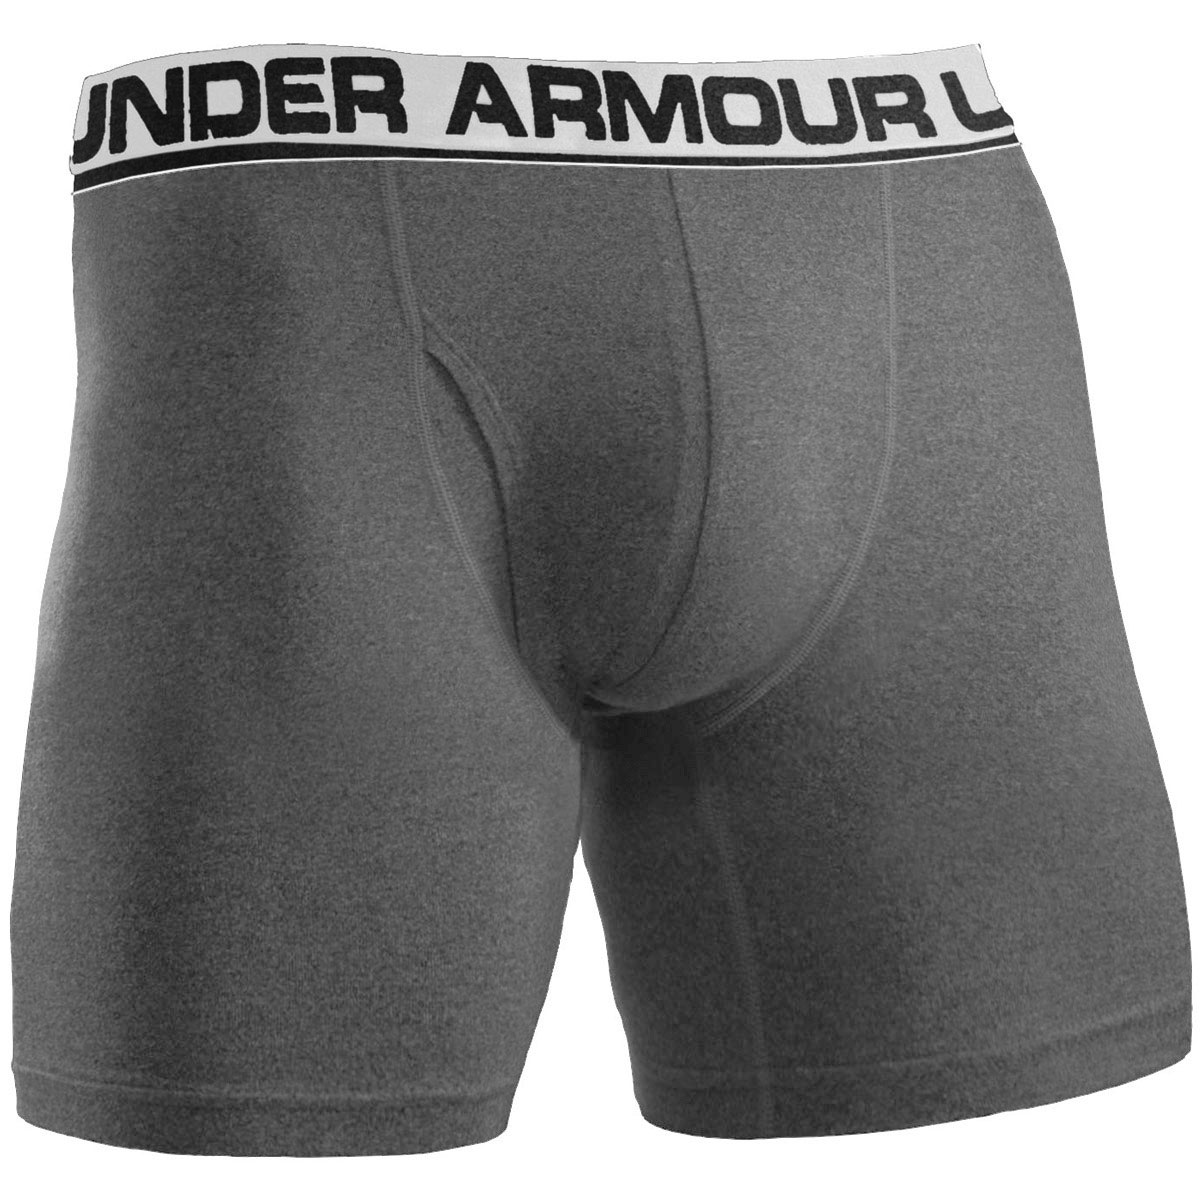 Under-Armour-Mens-UA-Touch-6-Boxerjock-Boxer-Briefs